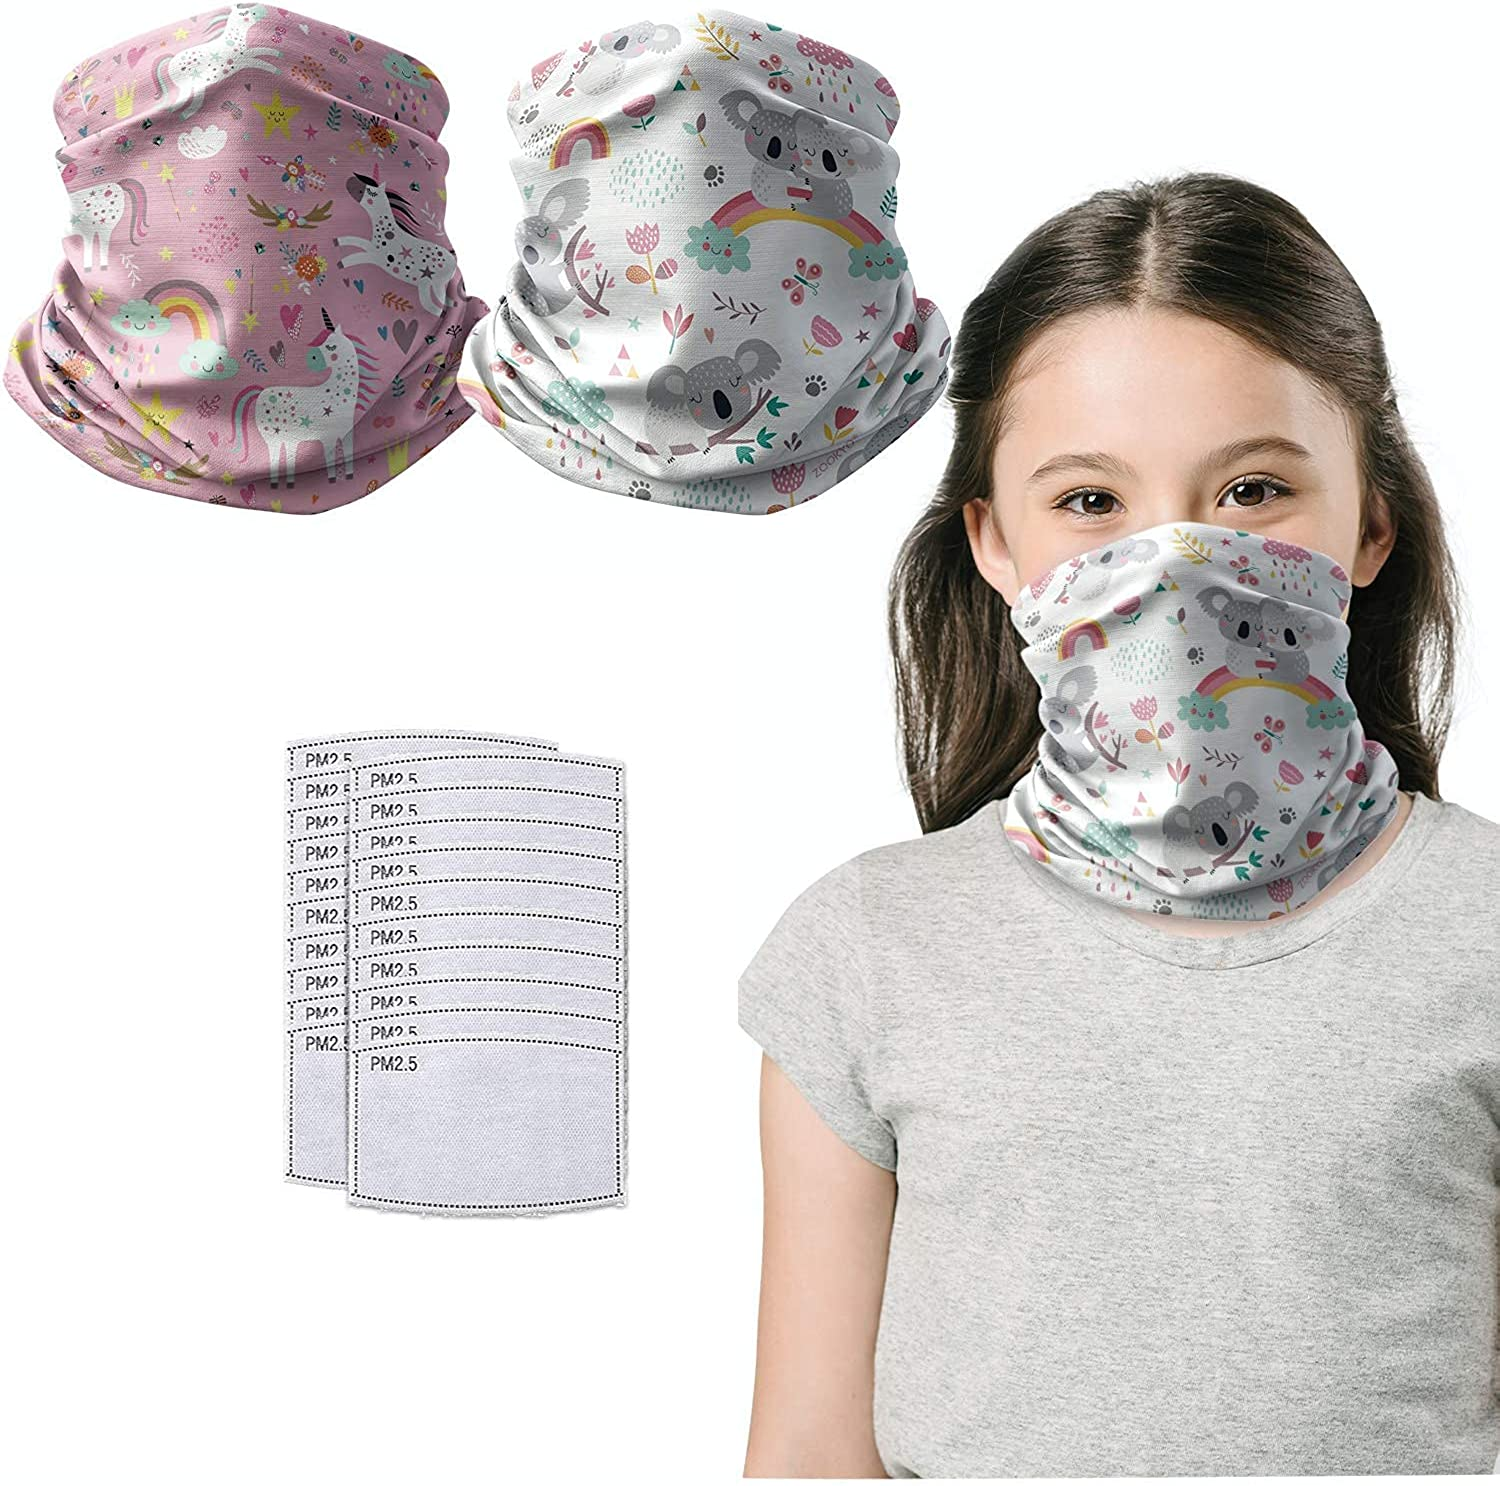 Kids Cotton Neck Gaiters with Filter - Max 44% OFF Masks f Scarf Pocket High quality new Face